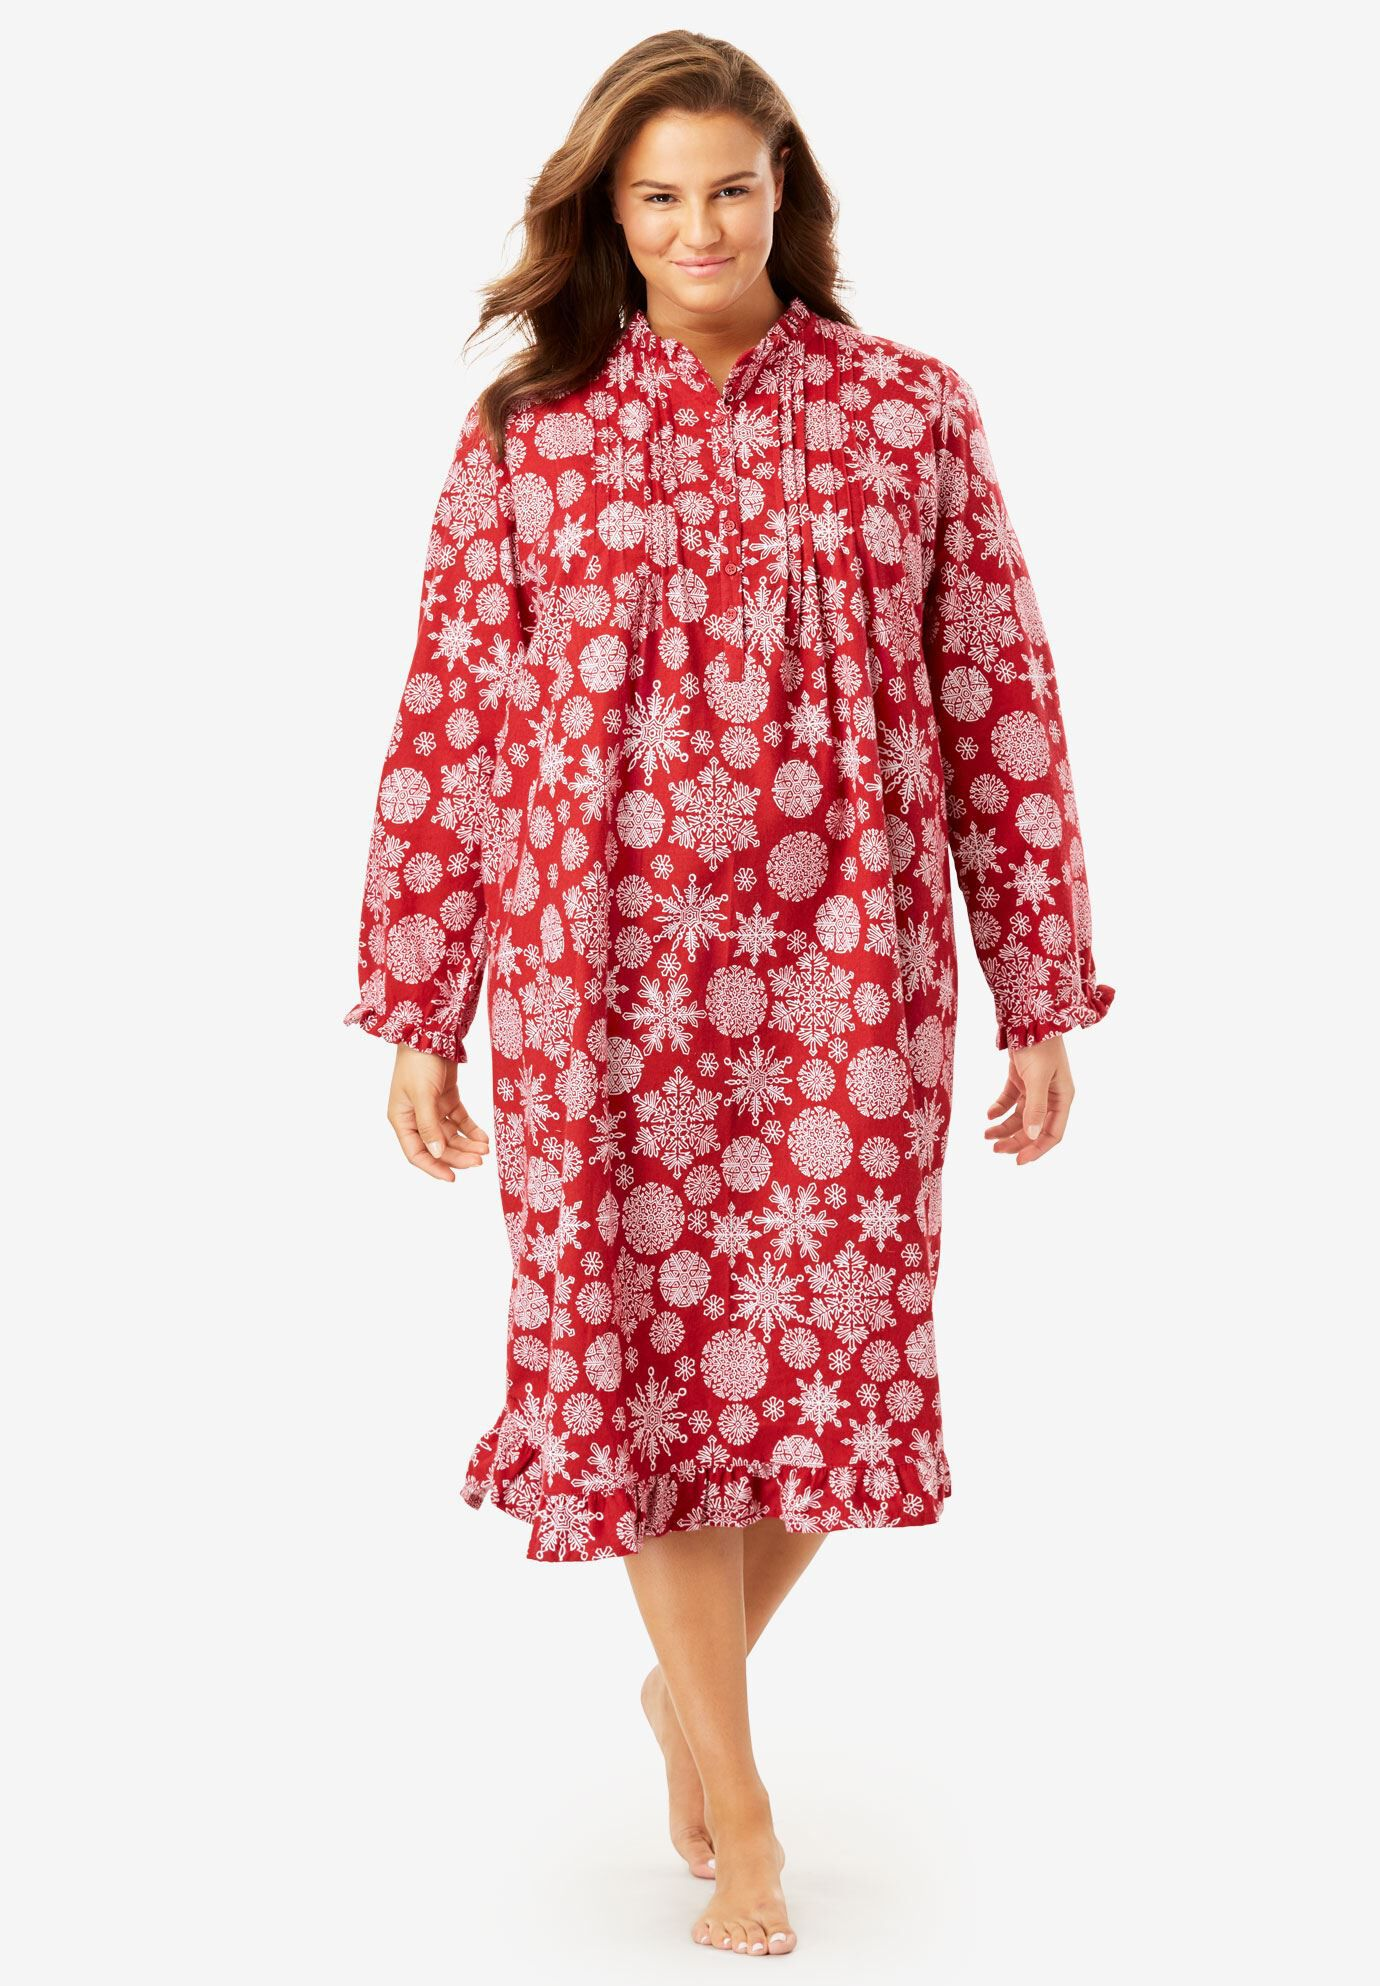 Only Necessities Womens Plus Size Cotton Flannel Print Short Gown